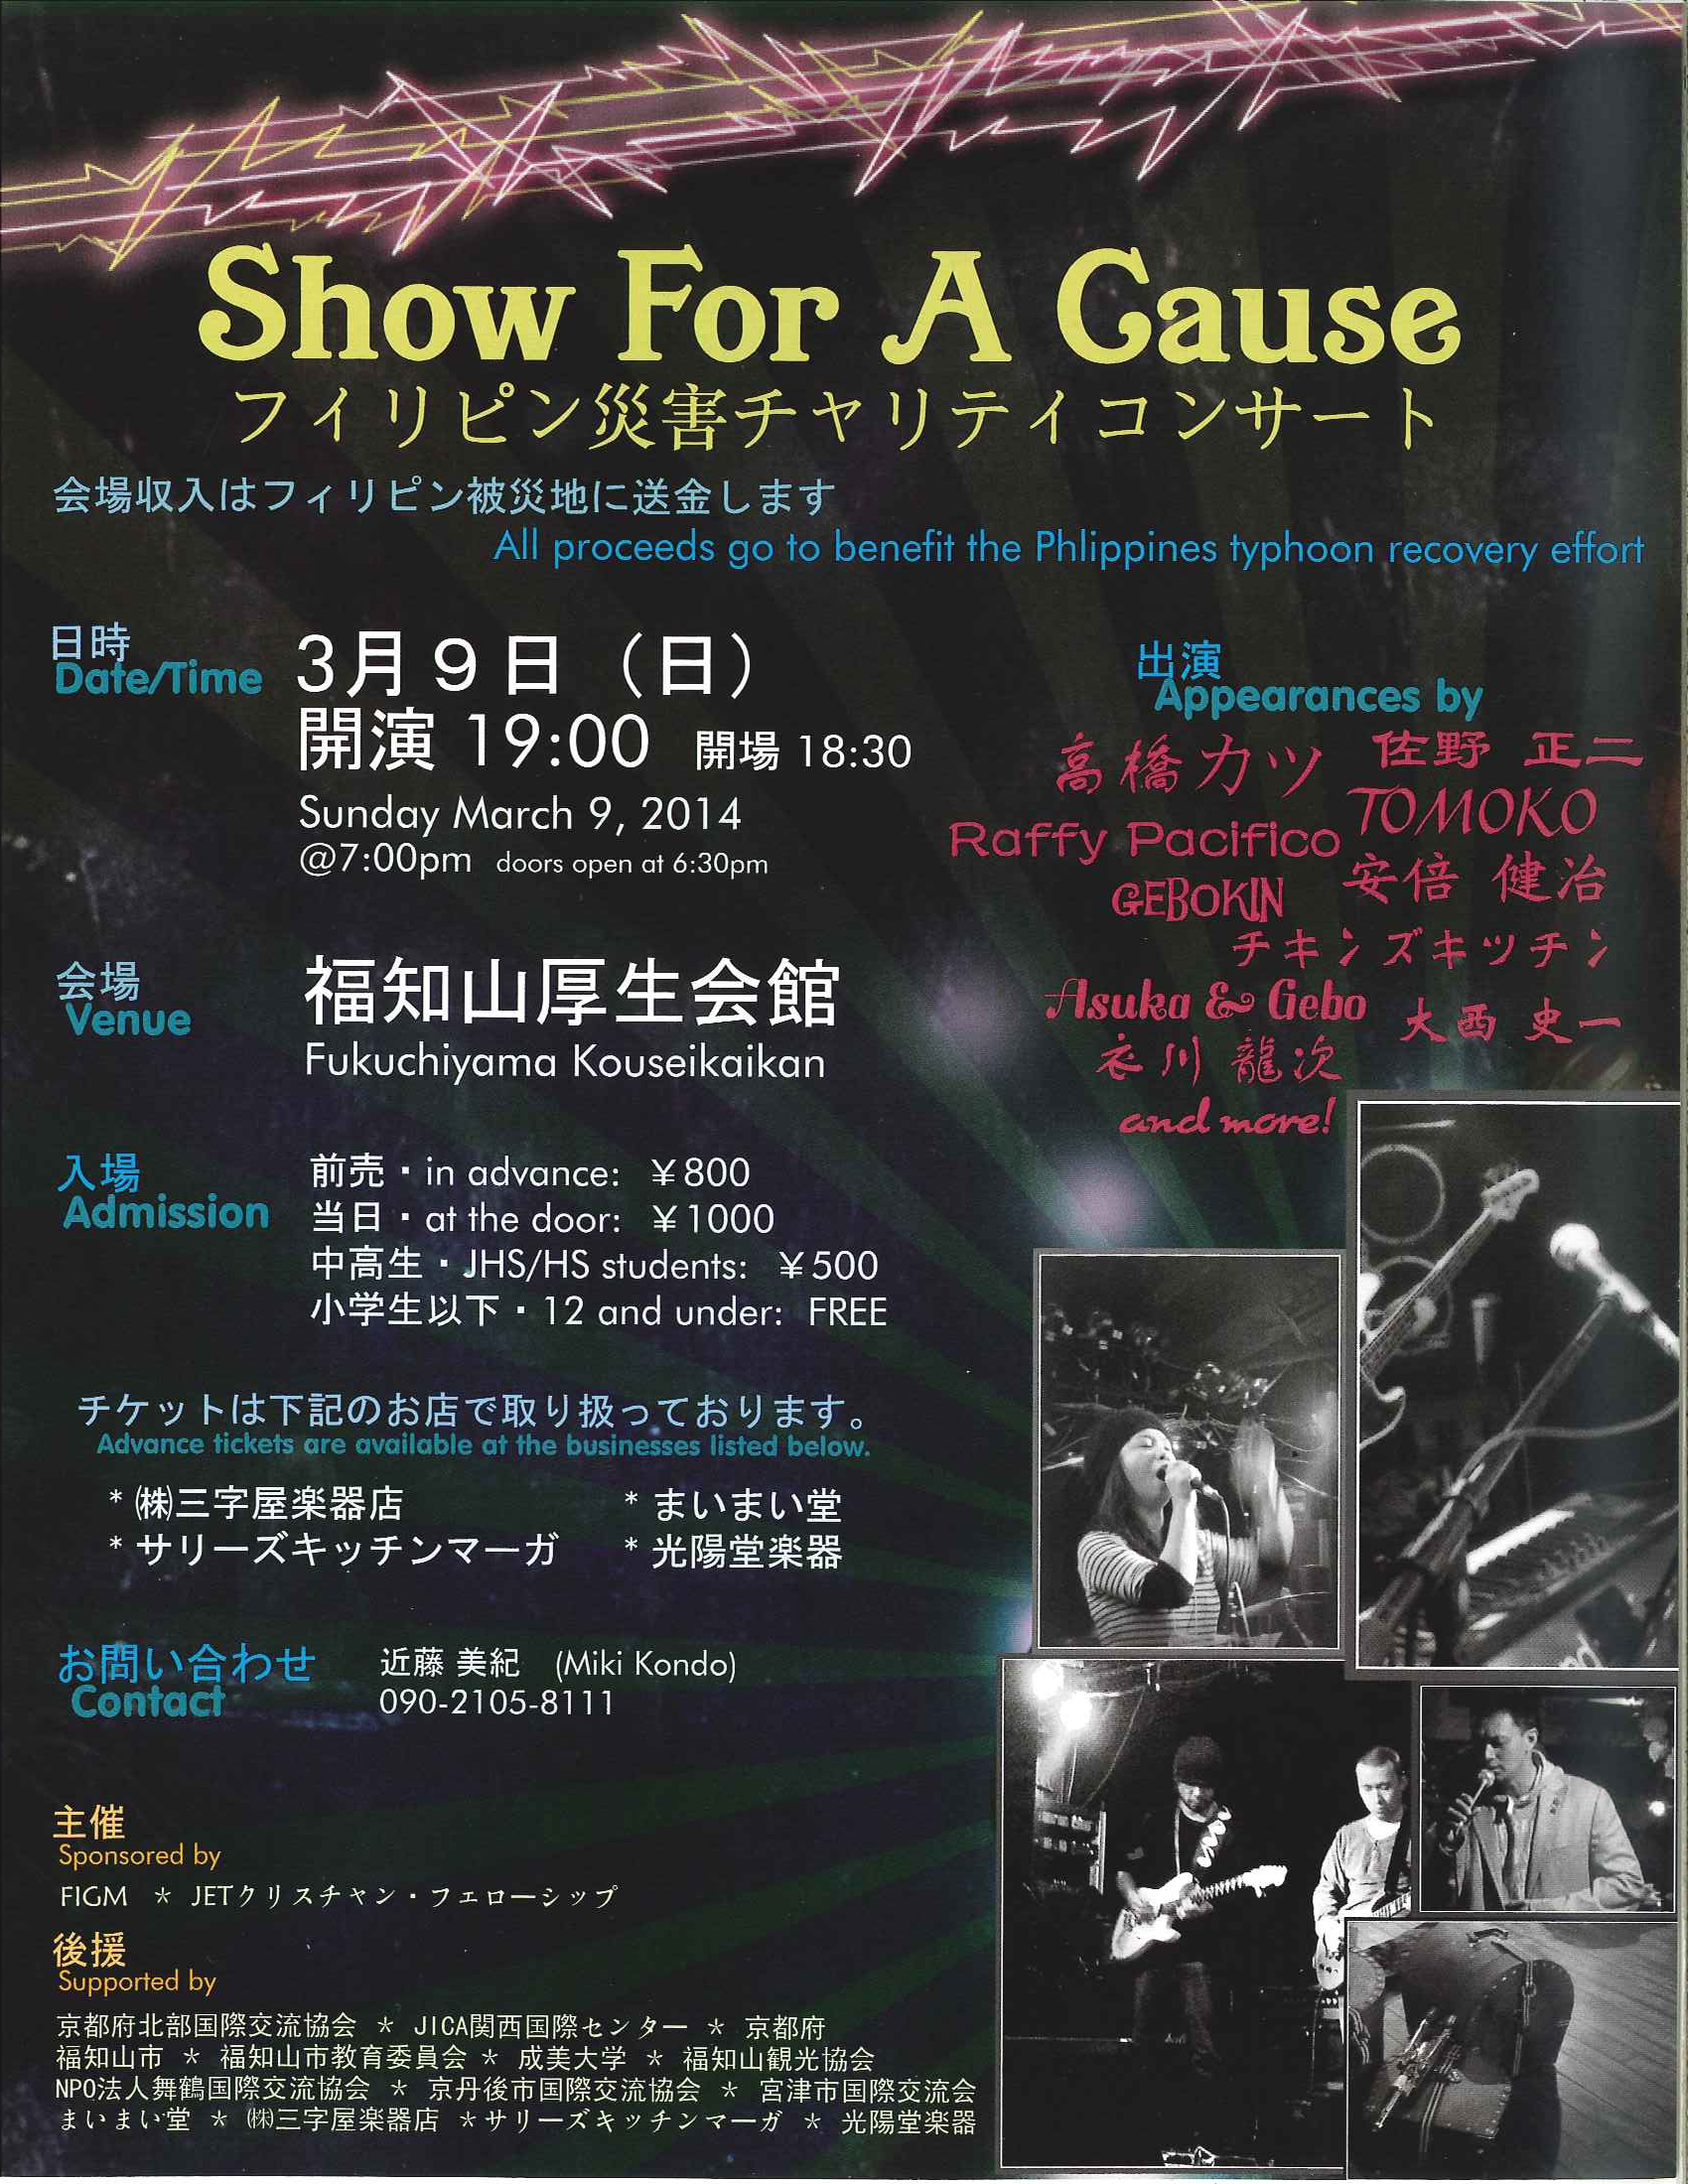 ShowforaCause